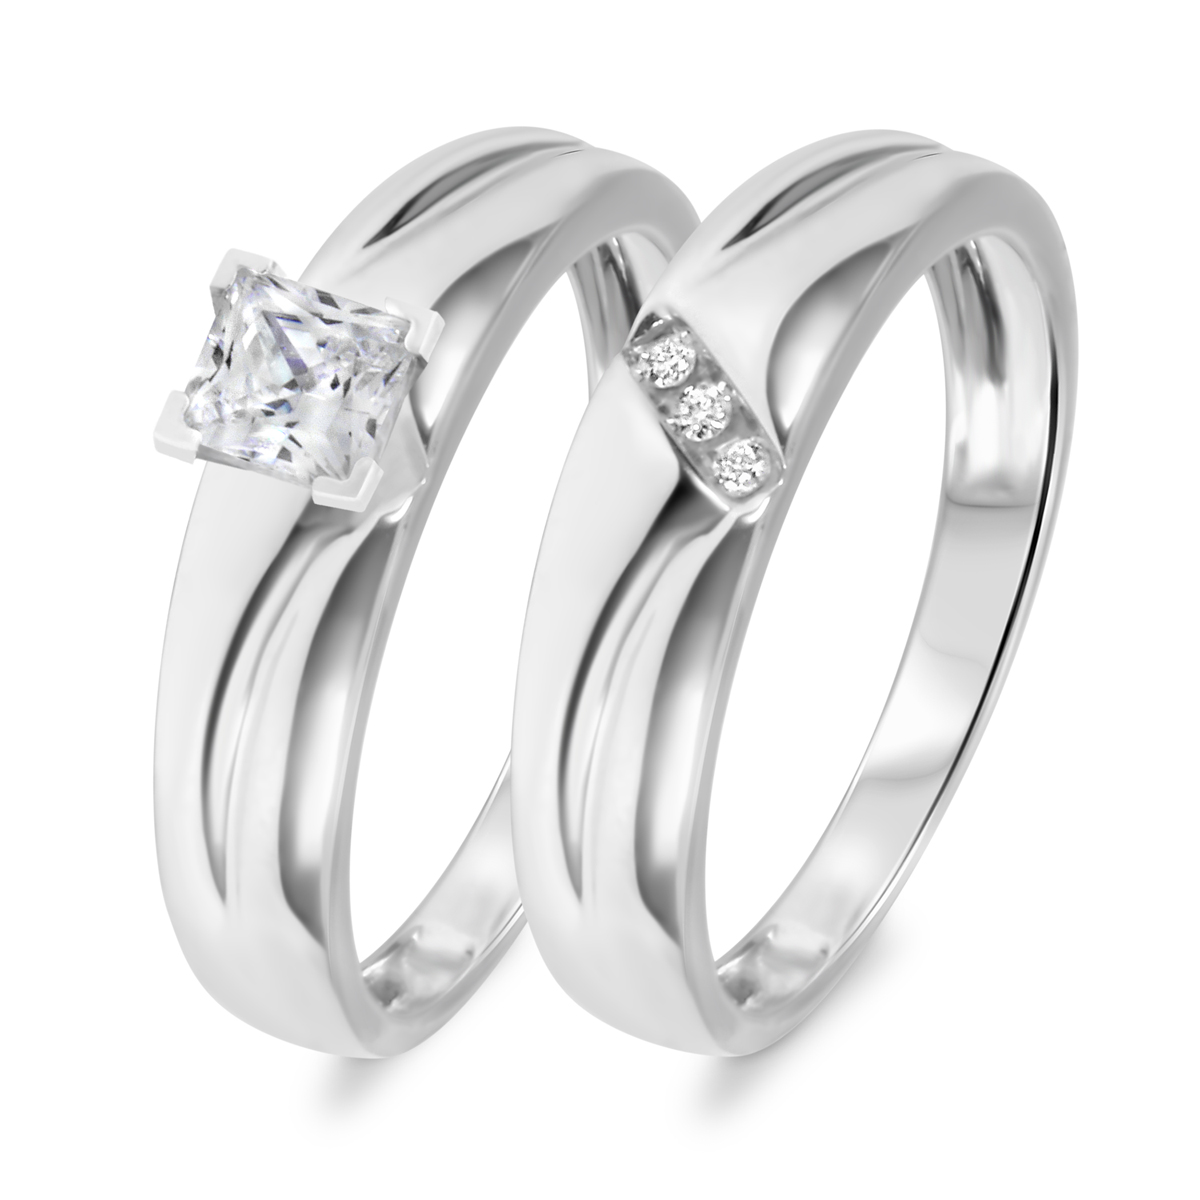 1/3 CT. T.W. Diamond Women's Bridal Wedding Ring Set 10K White Gold